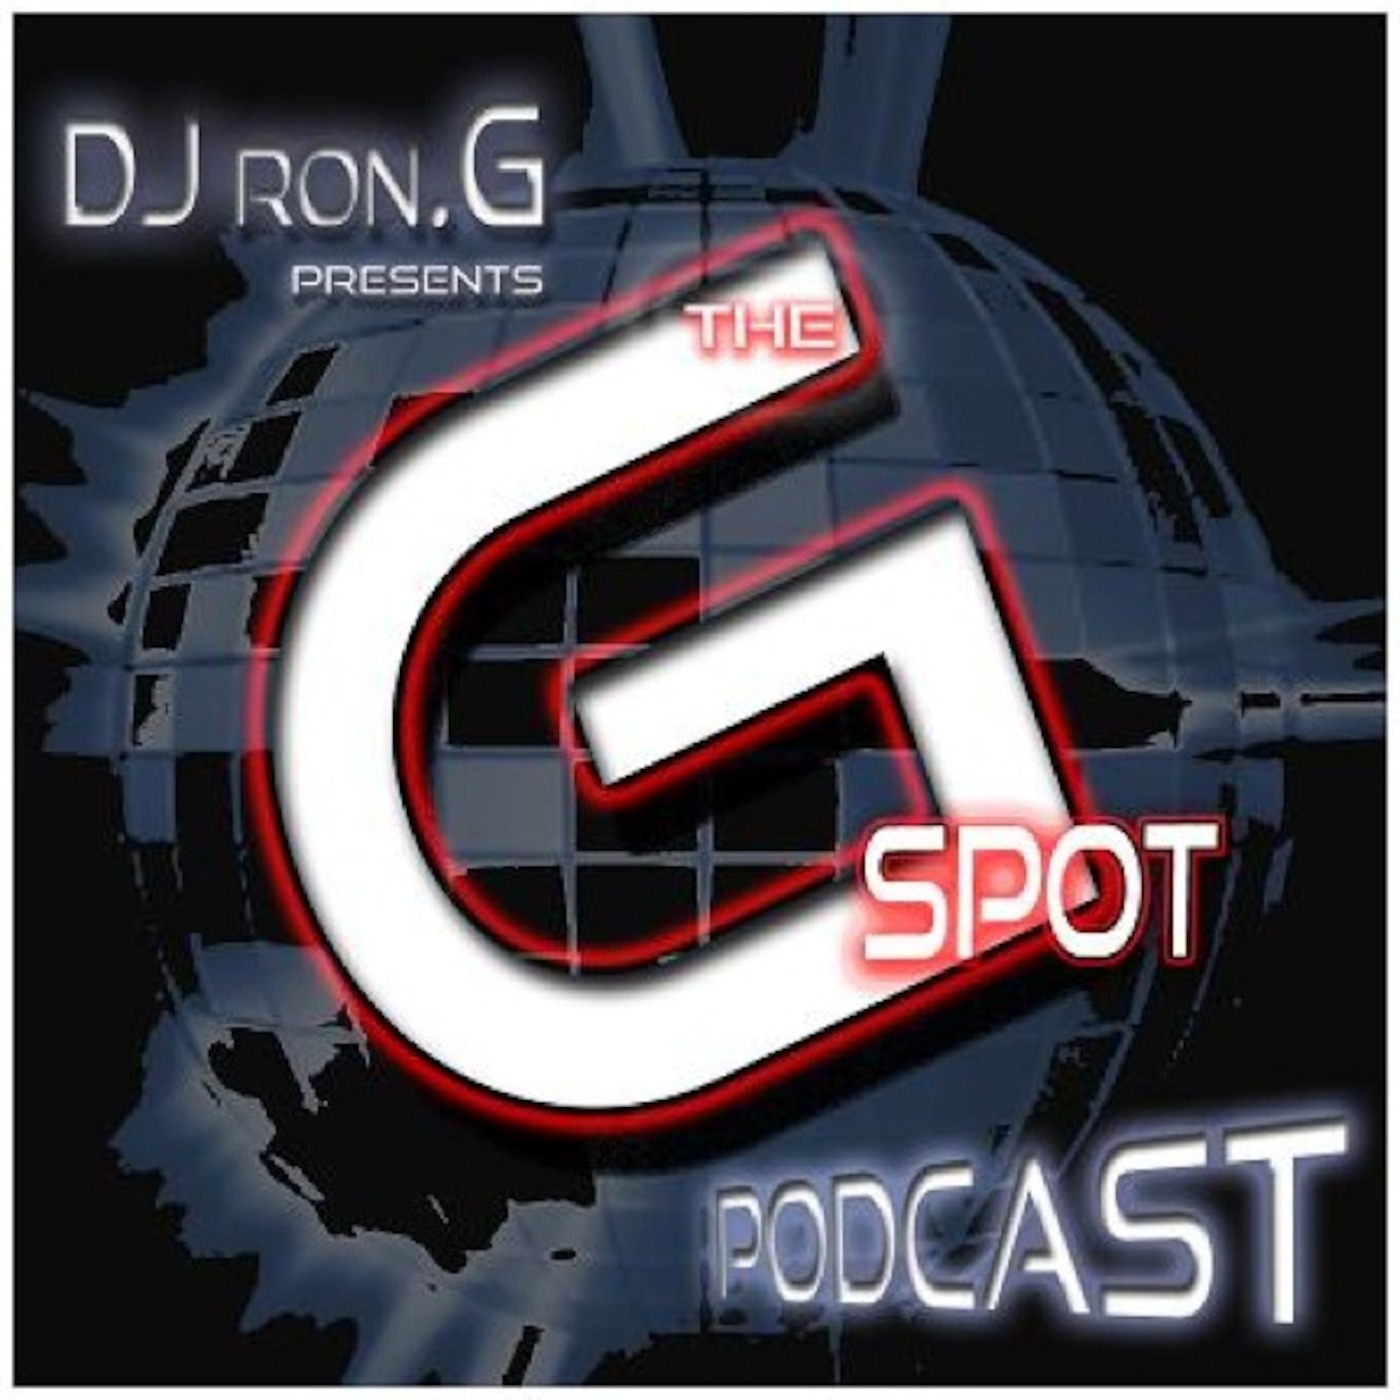 Dj Ron G presents The G-Spot Podcast